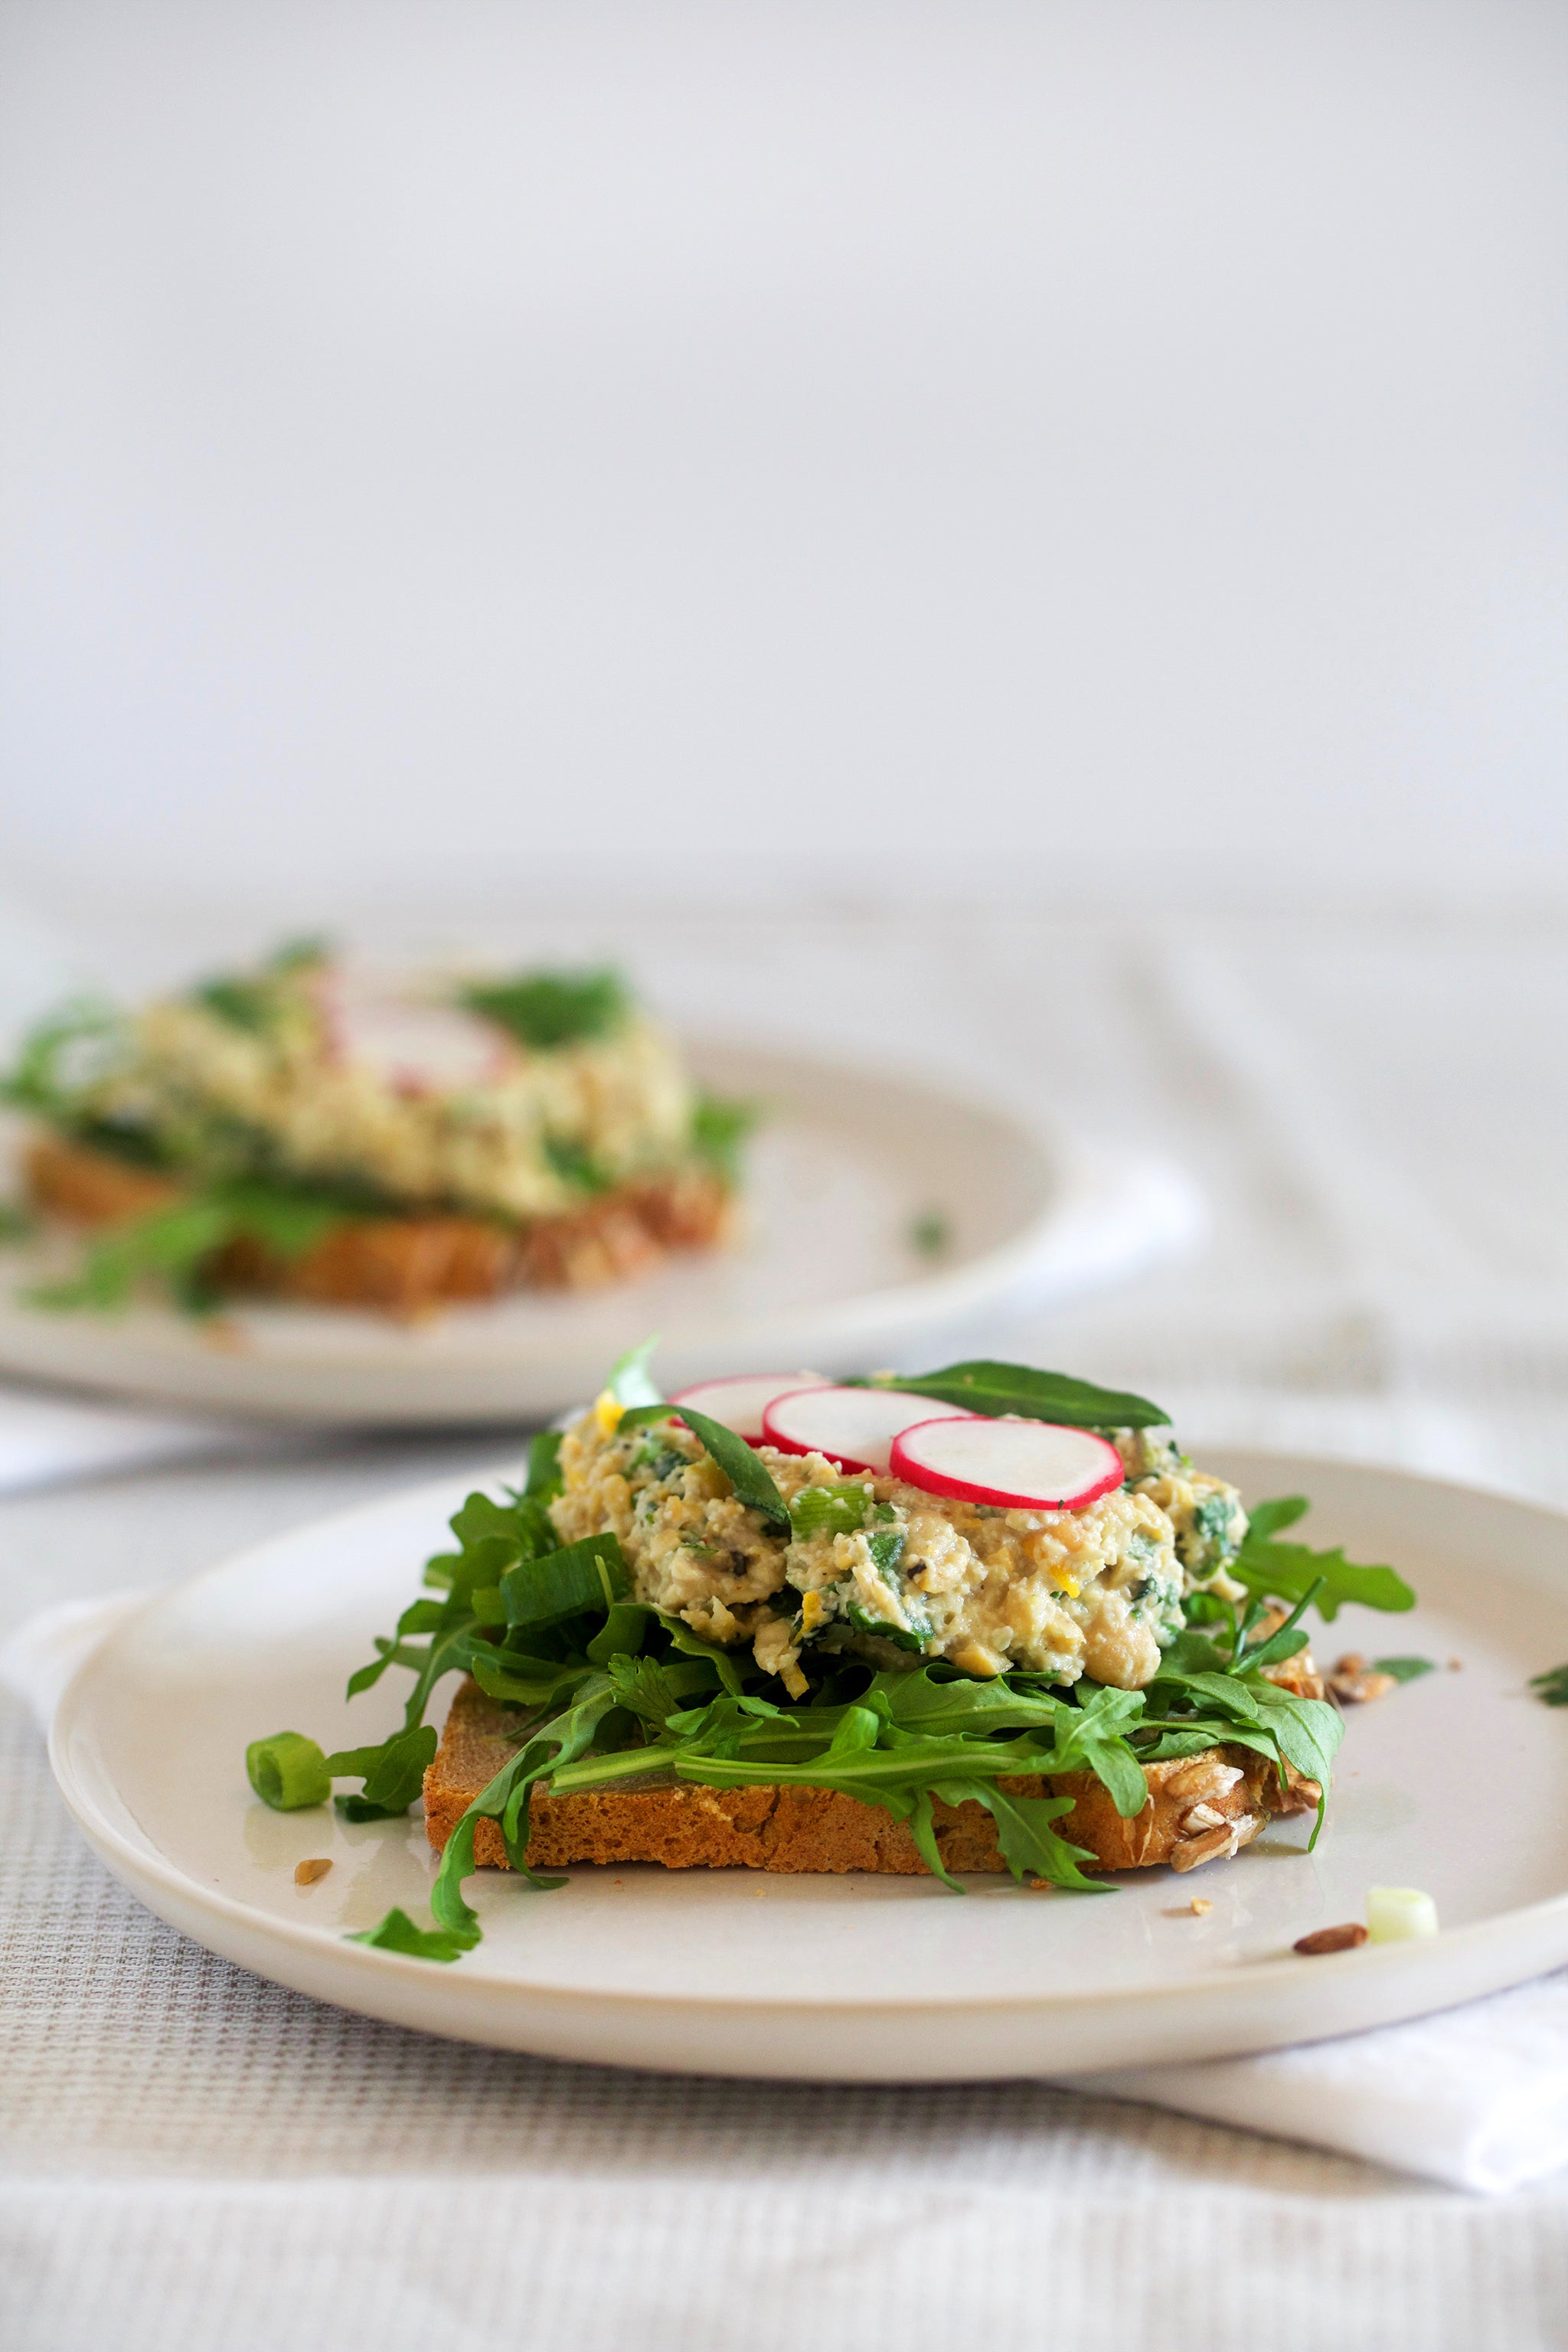 Vegan CHICK 'N MAYO SANDWICHES - a delicious healthy meat and dairy free take on a classic chicken mayo sandwich combo - made with chickpeas and sunflower seeds